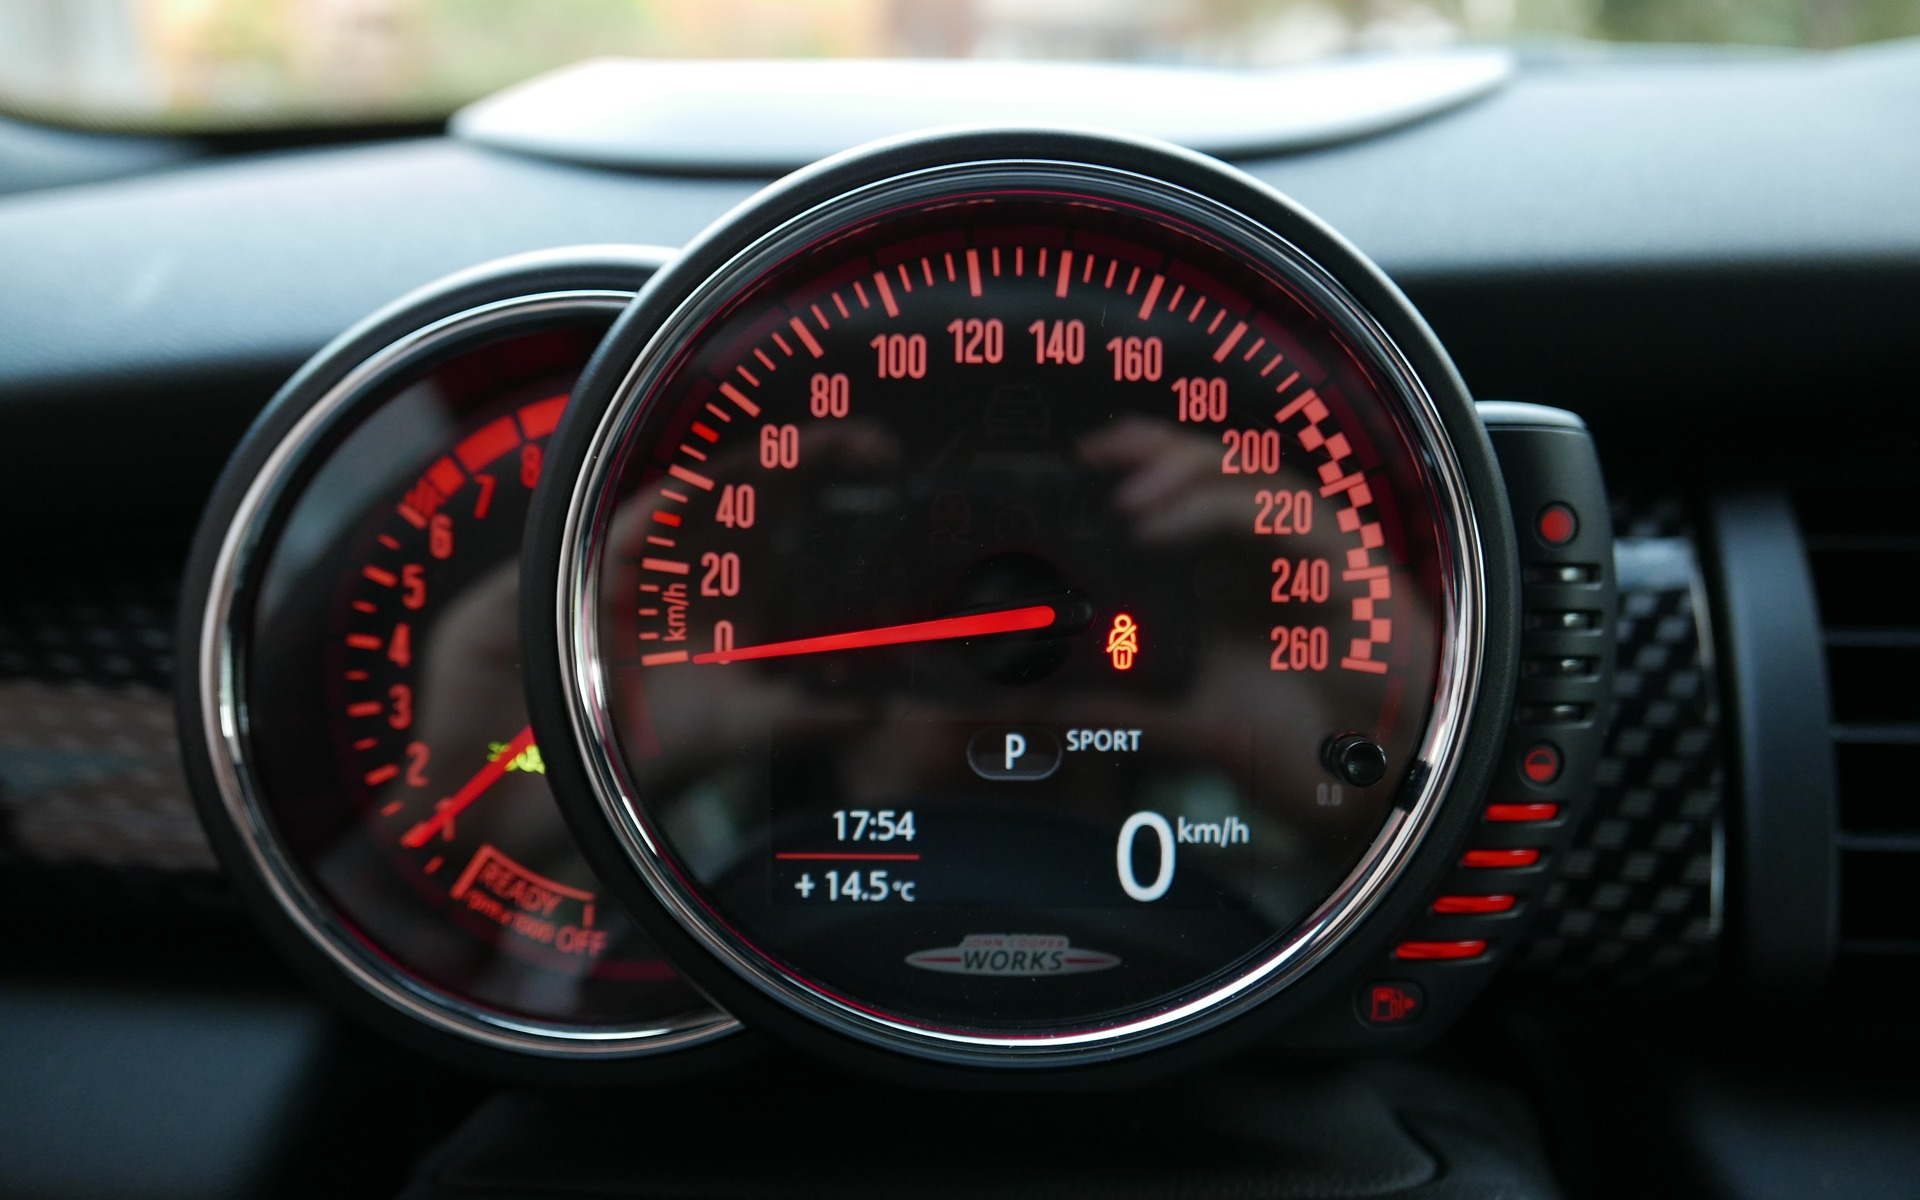 The round speedometer matches the circular centre stack.